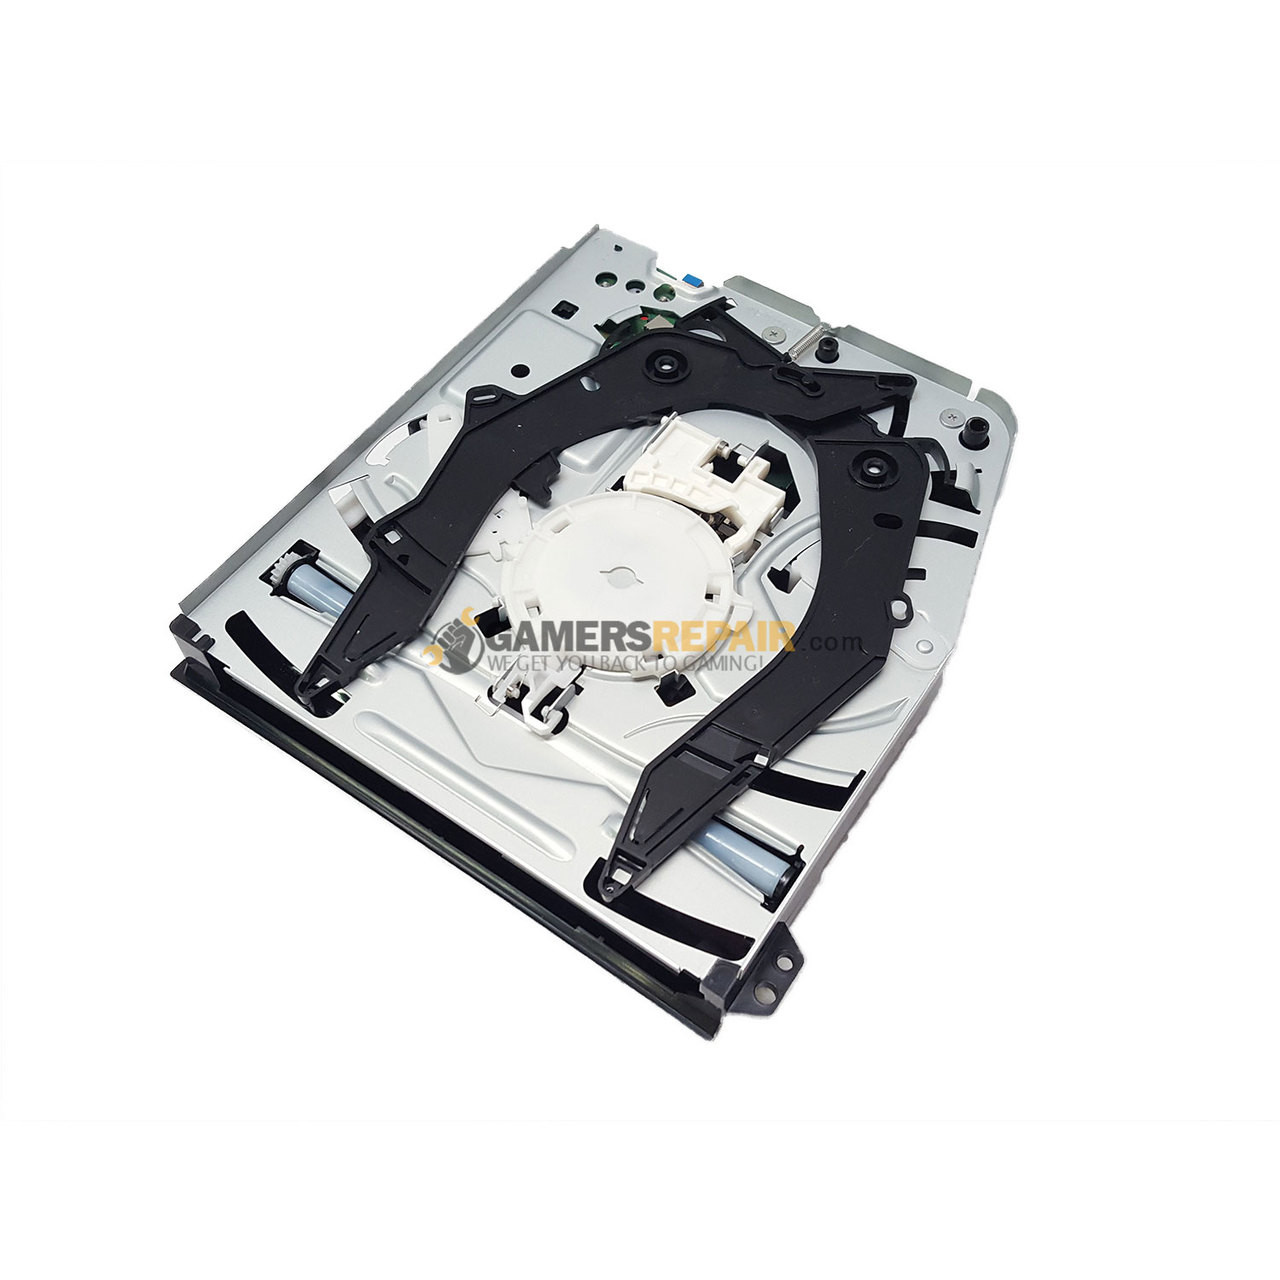 OEM Blu-Ray Disc Game Drive for PS4 Slim CUH-2115 CUH-2215